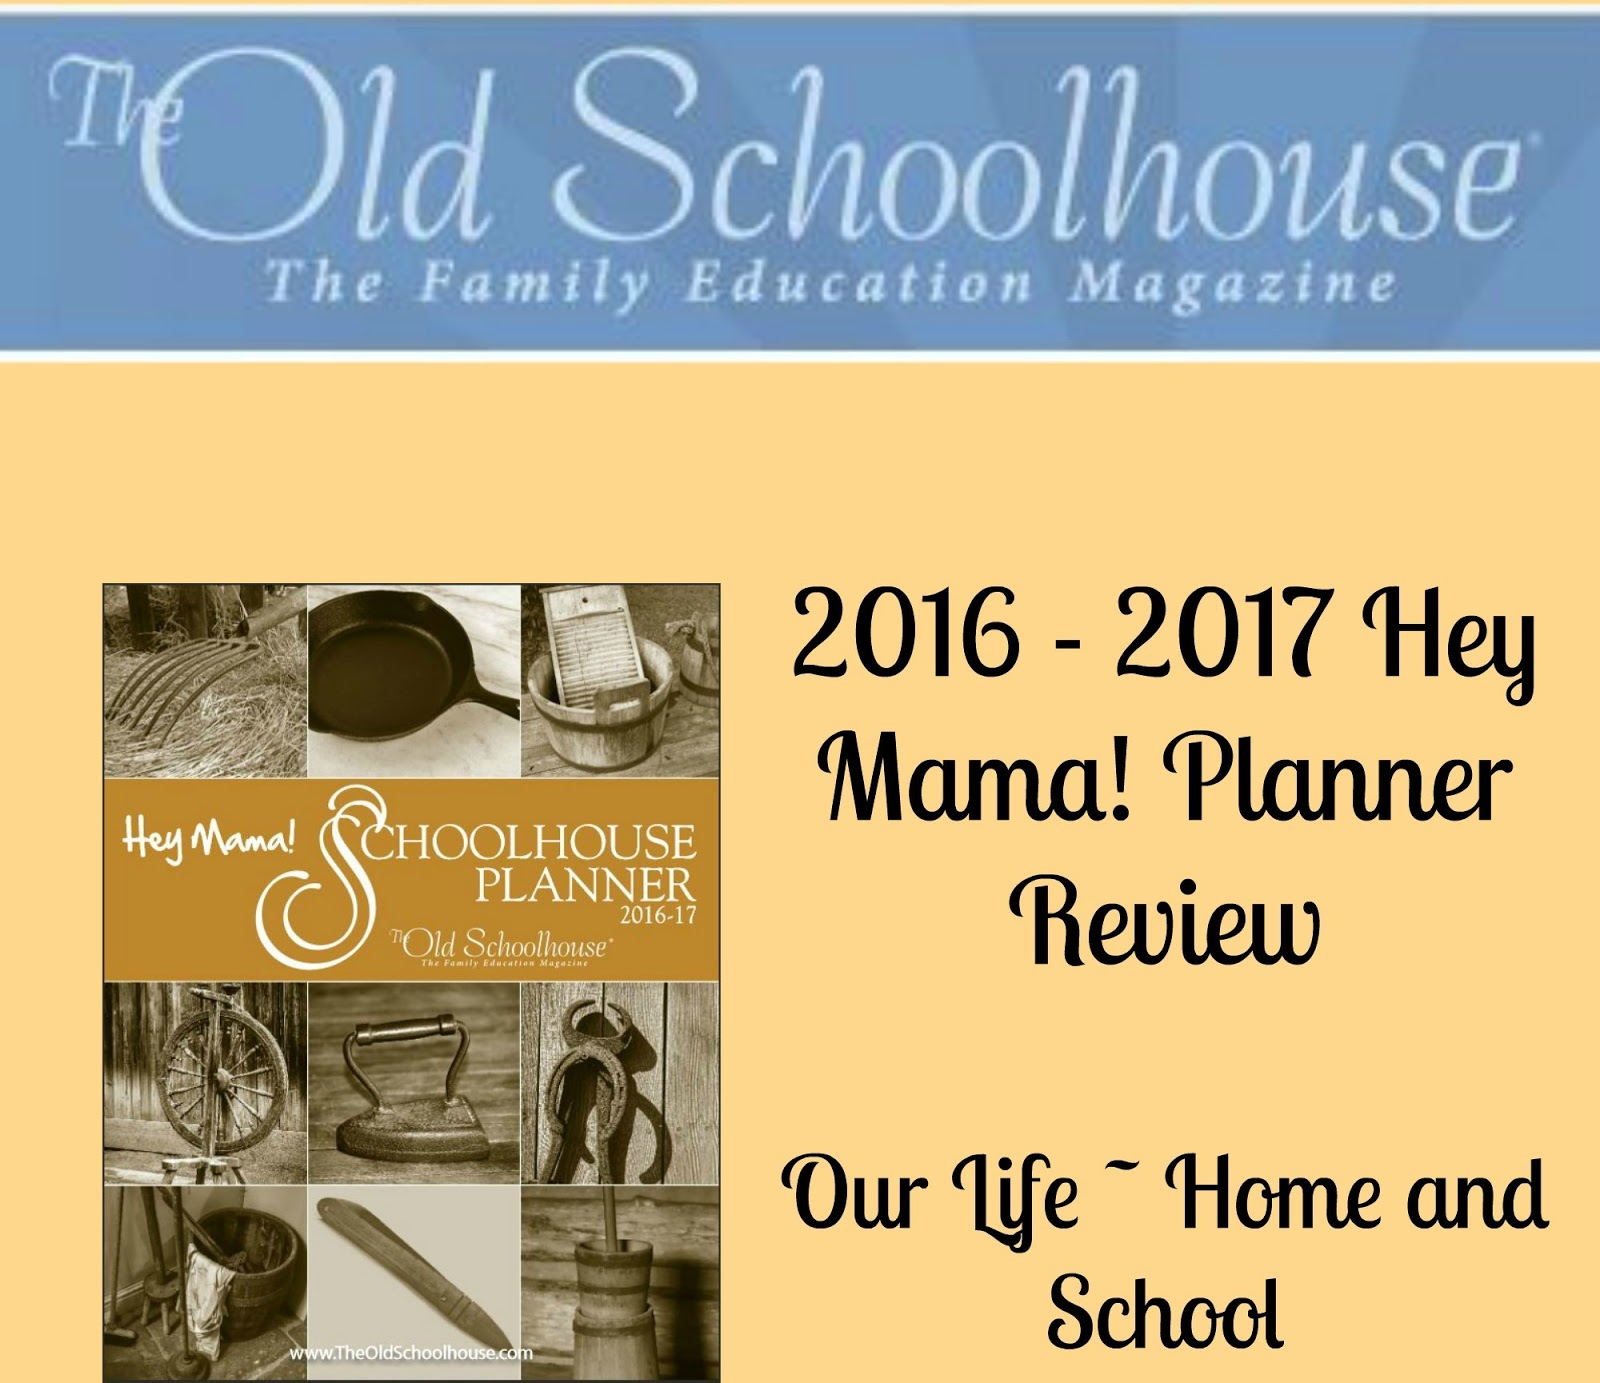 our life home and school the old schoolhouse hey mama planner